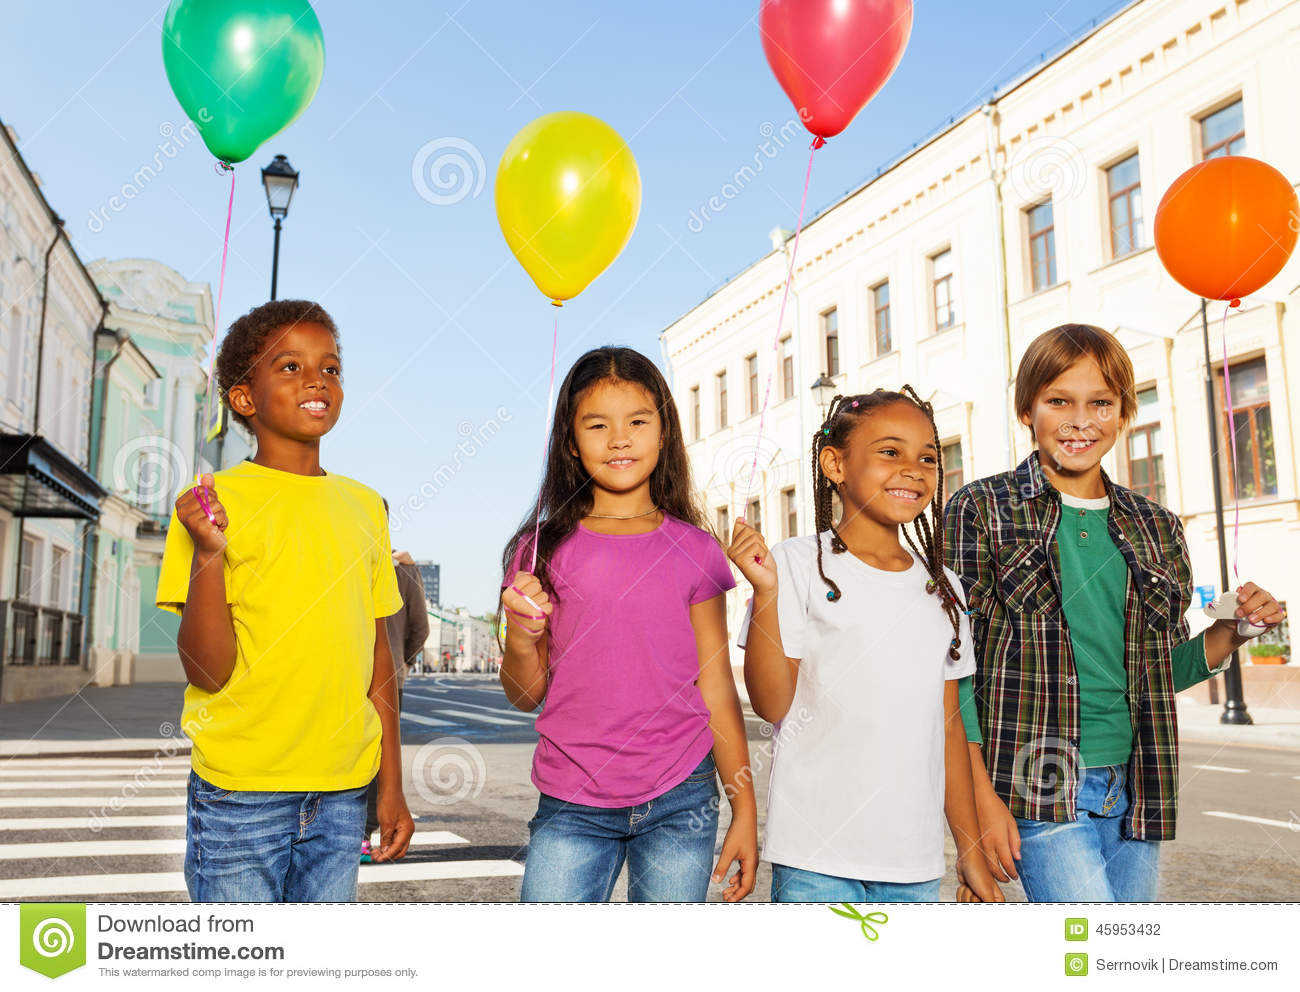 Team of kids with colorful balloons standing